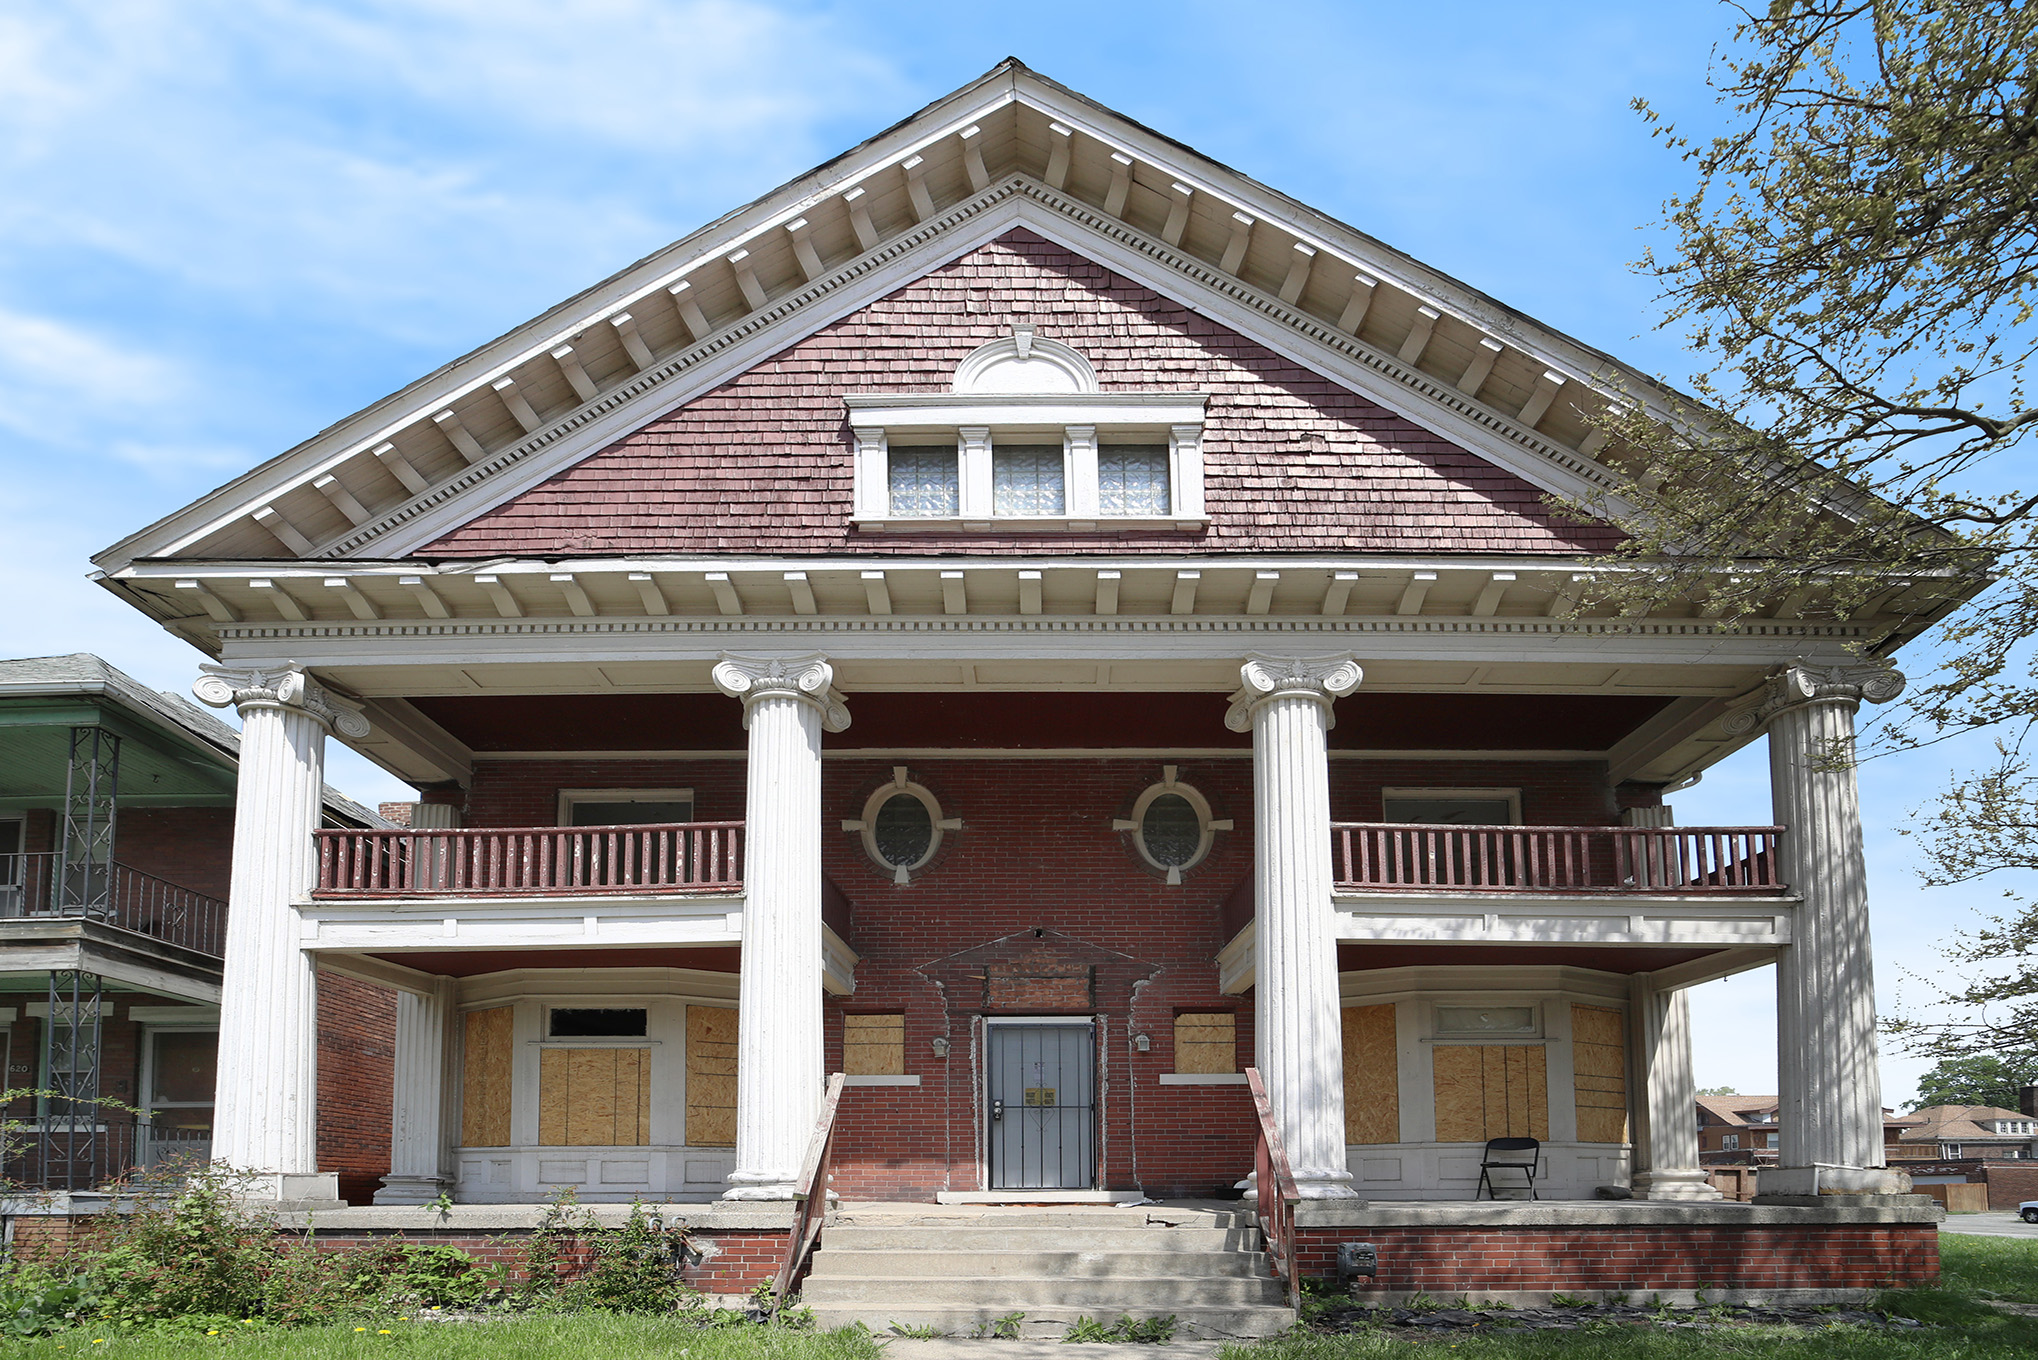 Restore this Greek Revival home to its